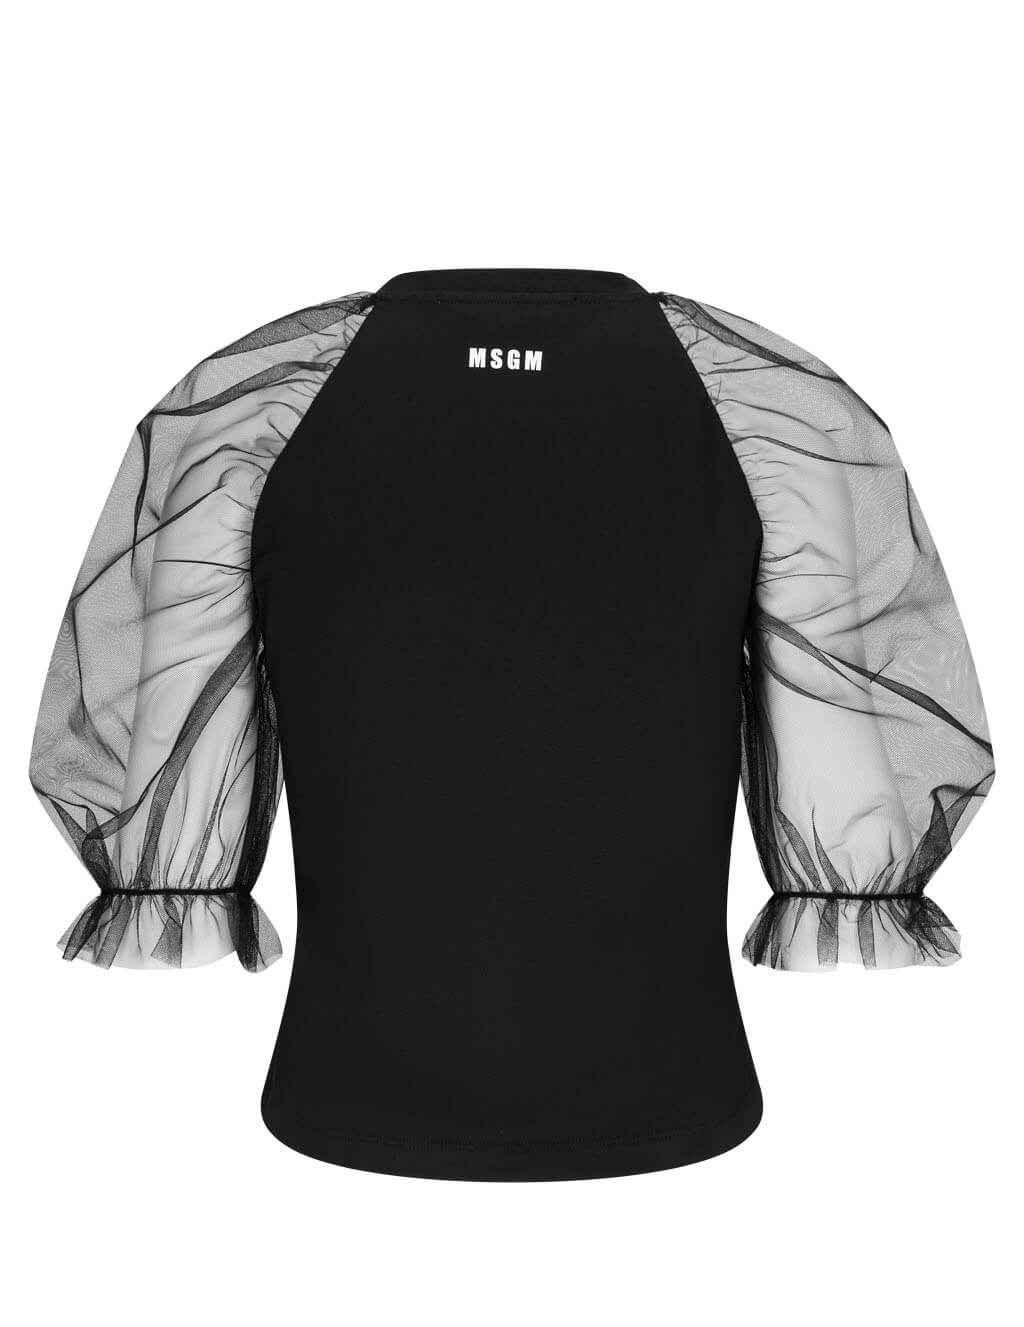 Women's MSGM Sheer Sleeve Top in Black. 2941MDM69 207798 99